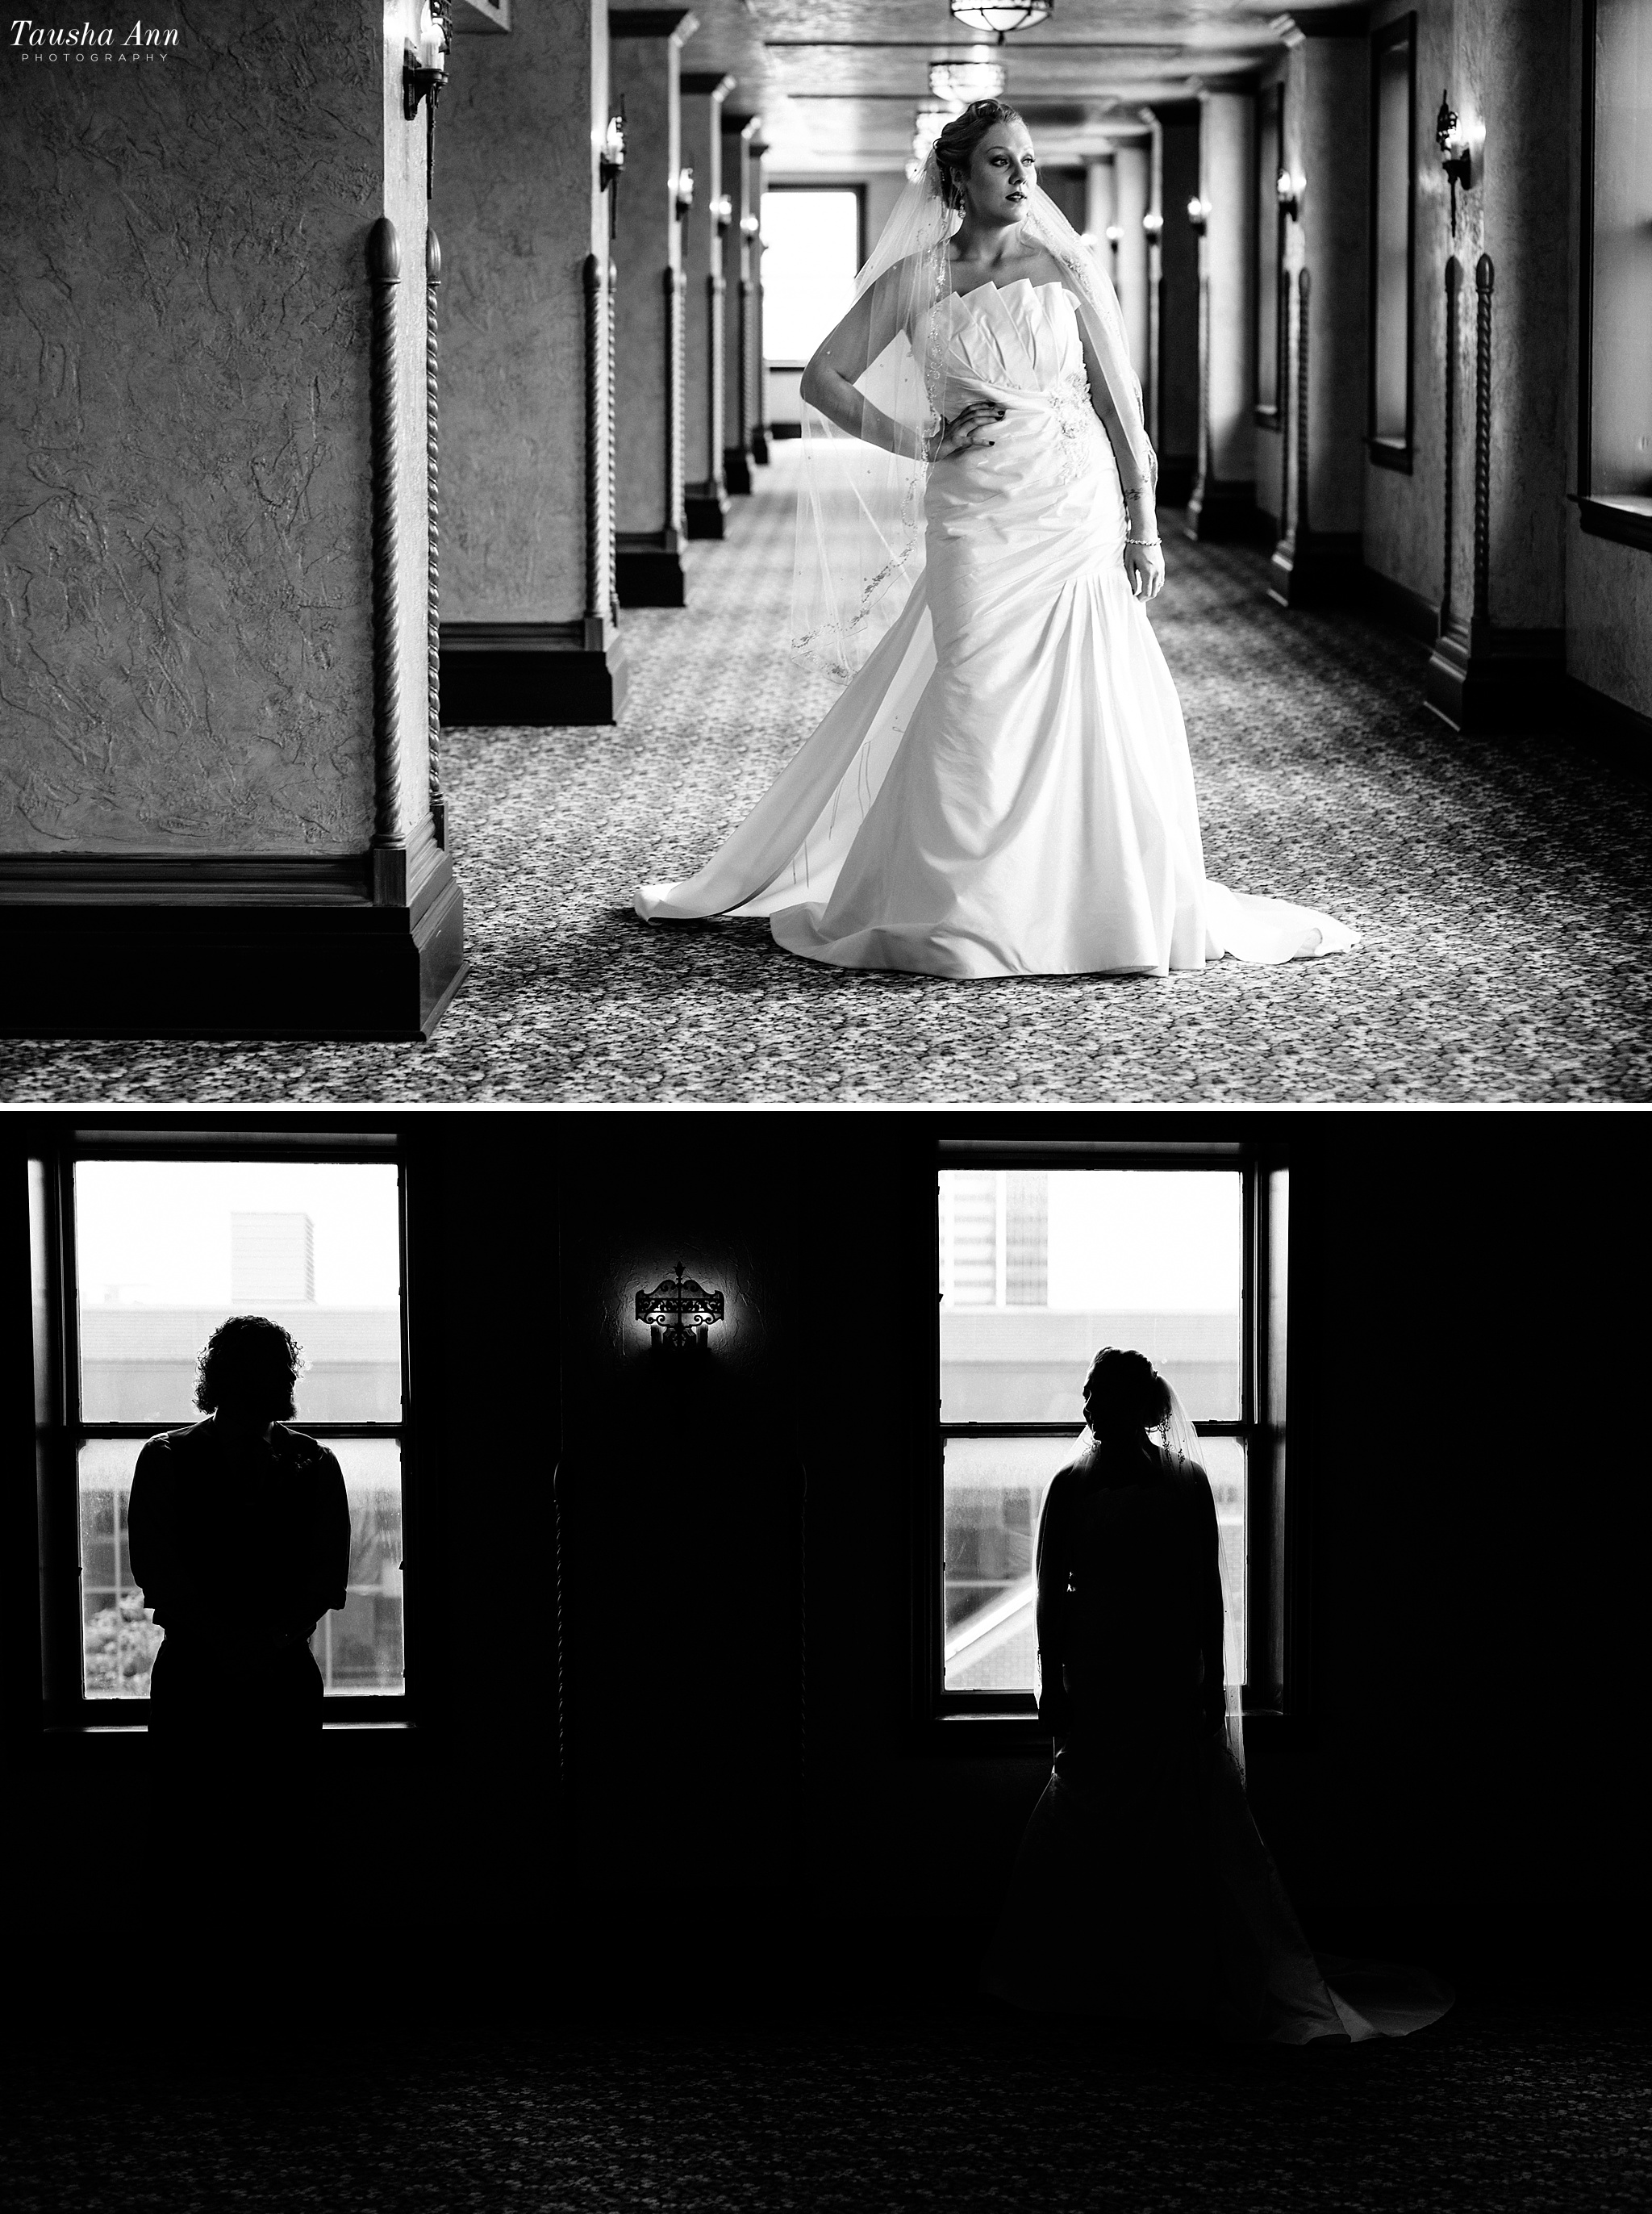 Black and white portrait of Bride. Silhouette of bride and groom in window.